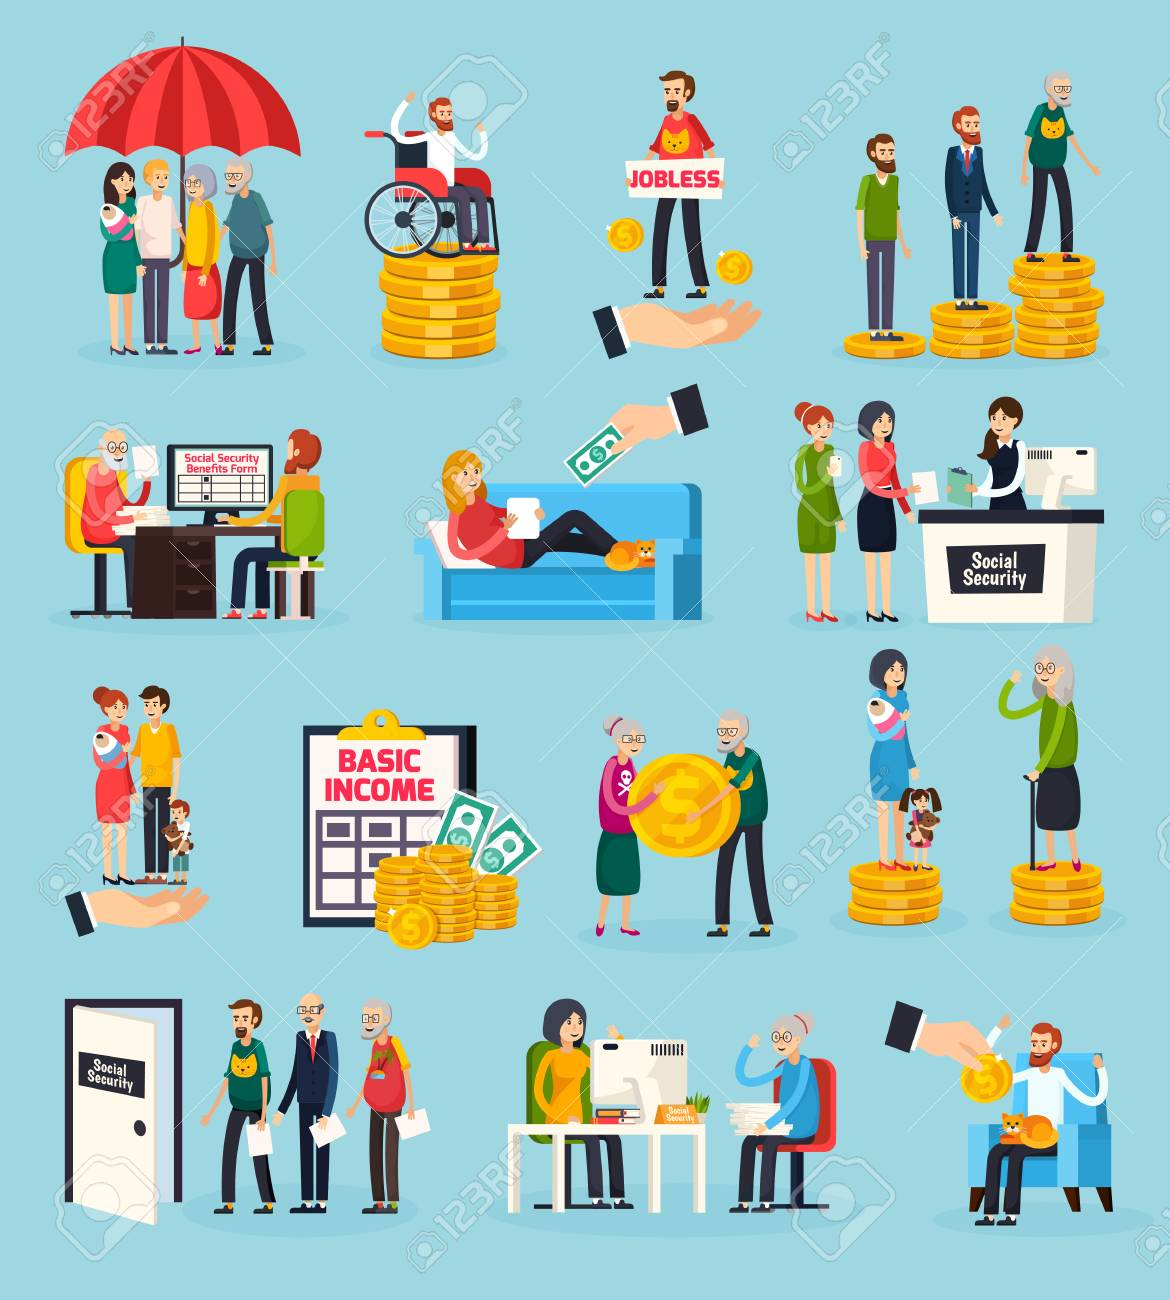 Social security orthogonal icons set with family protection, disability and unemployment benefits, documents execution isolated vector illustration - 93947555